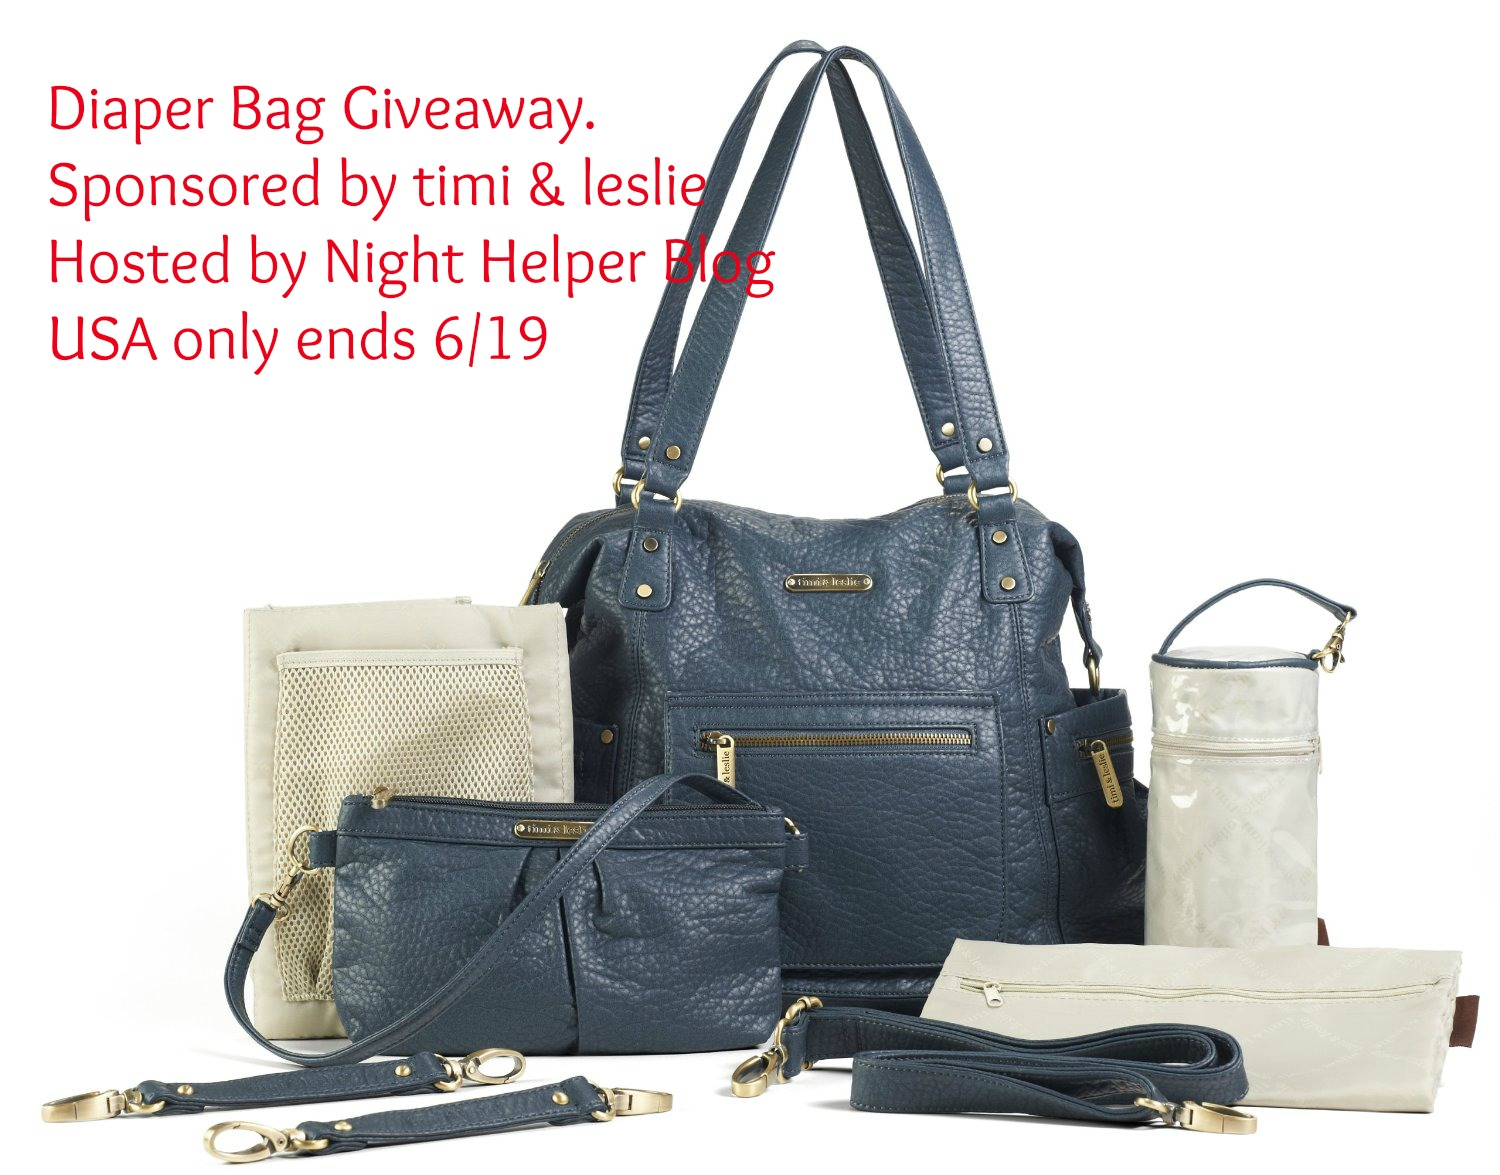 timi & leslie Diaper Bag Giveaway